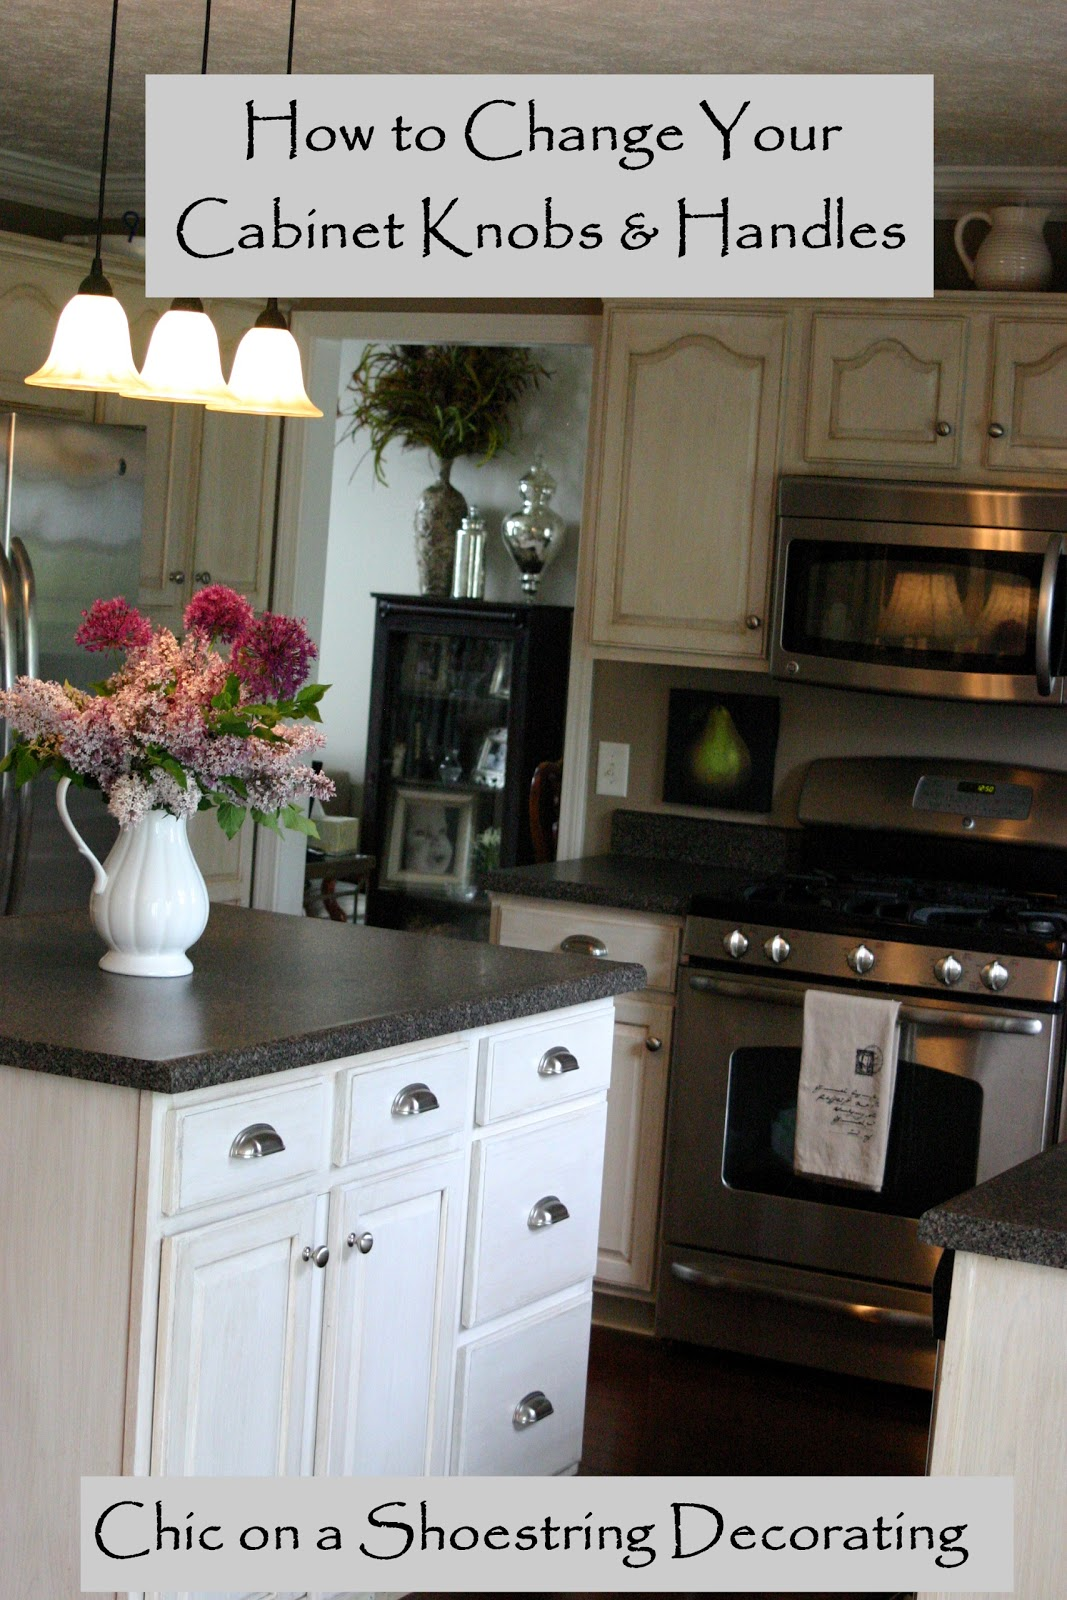 handles and pulls for kitchen cabinets chic on a shoestring decorating how to change your 16162